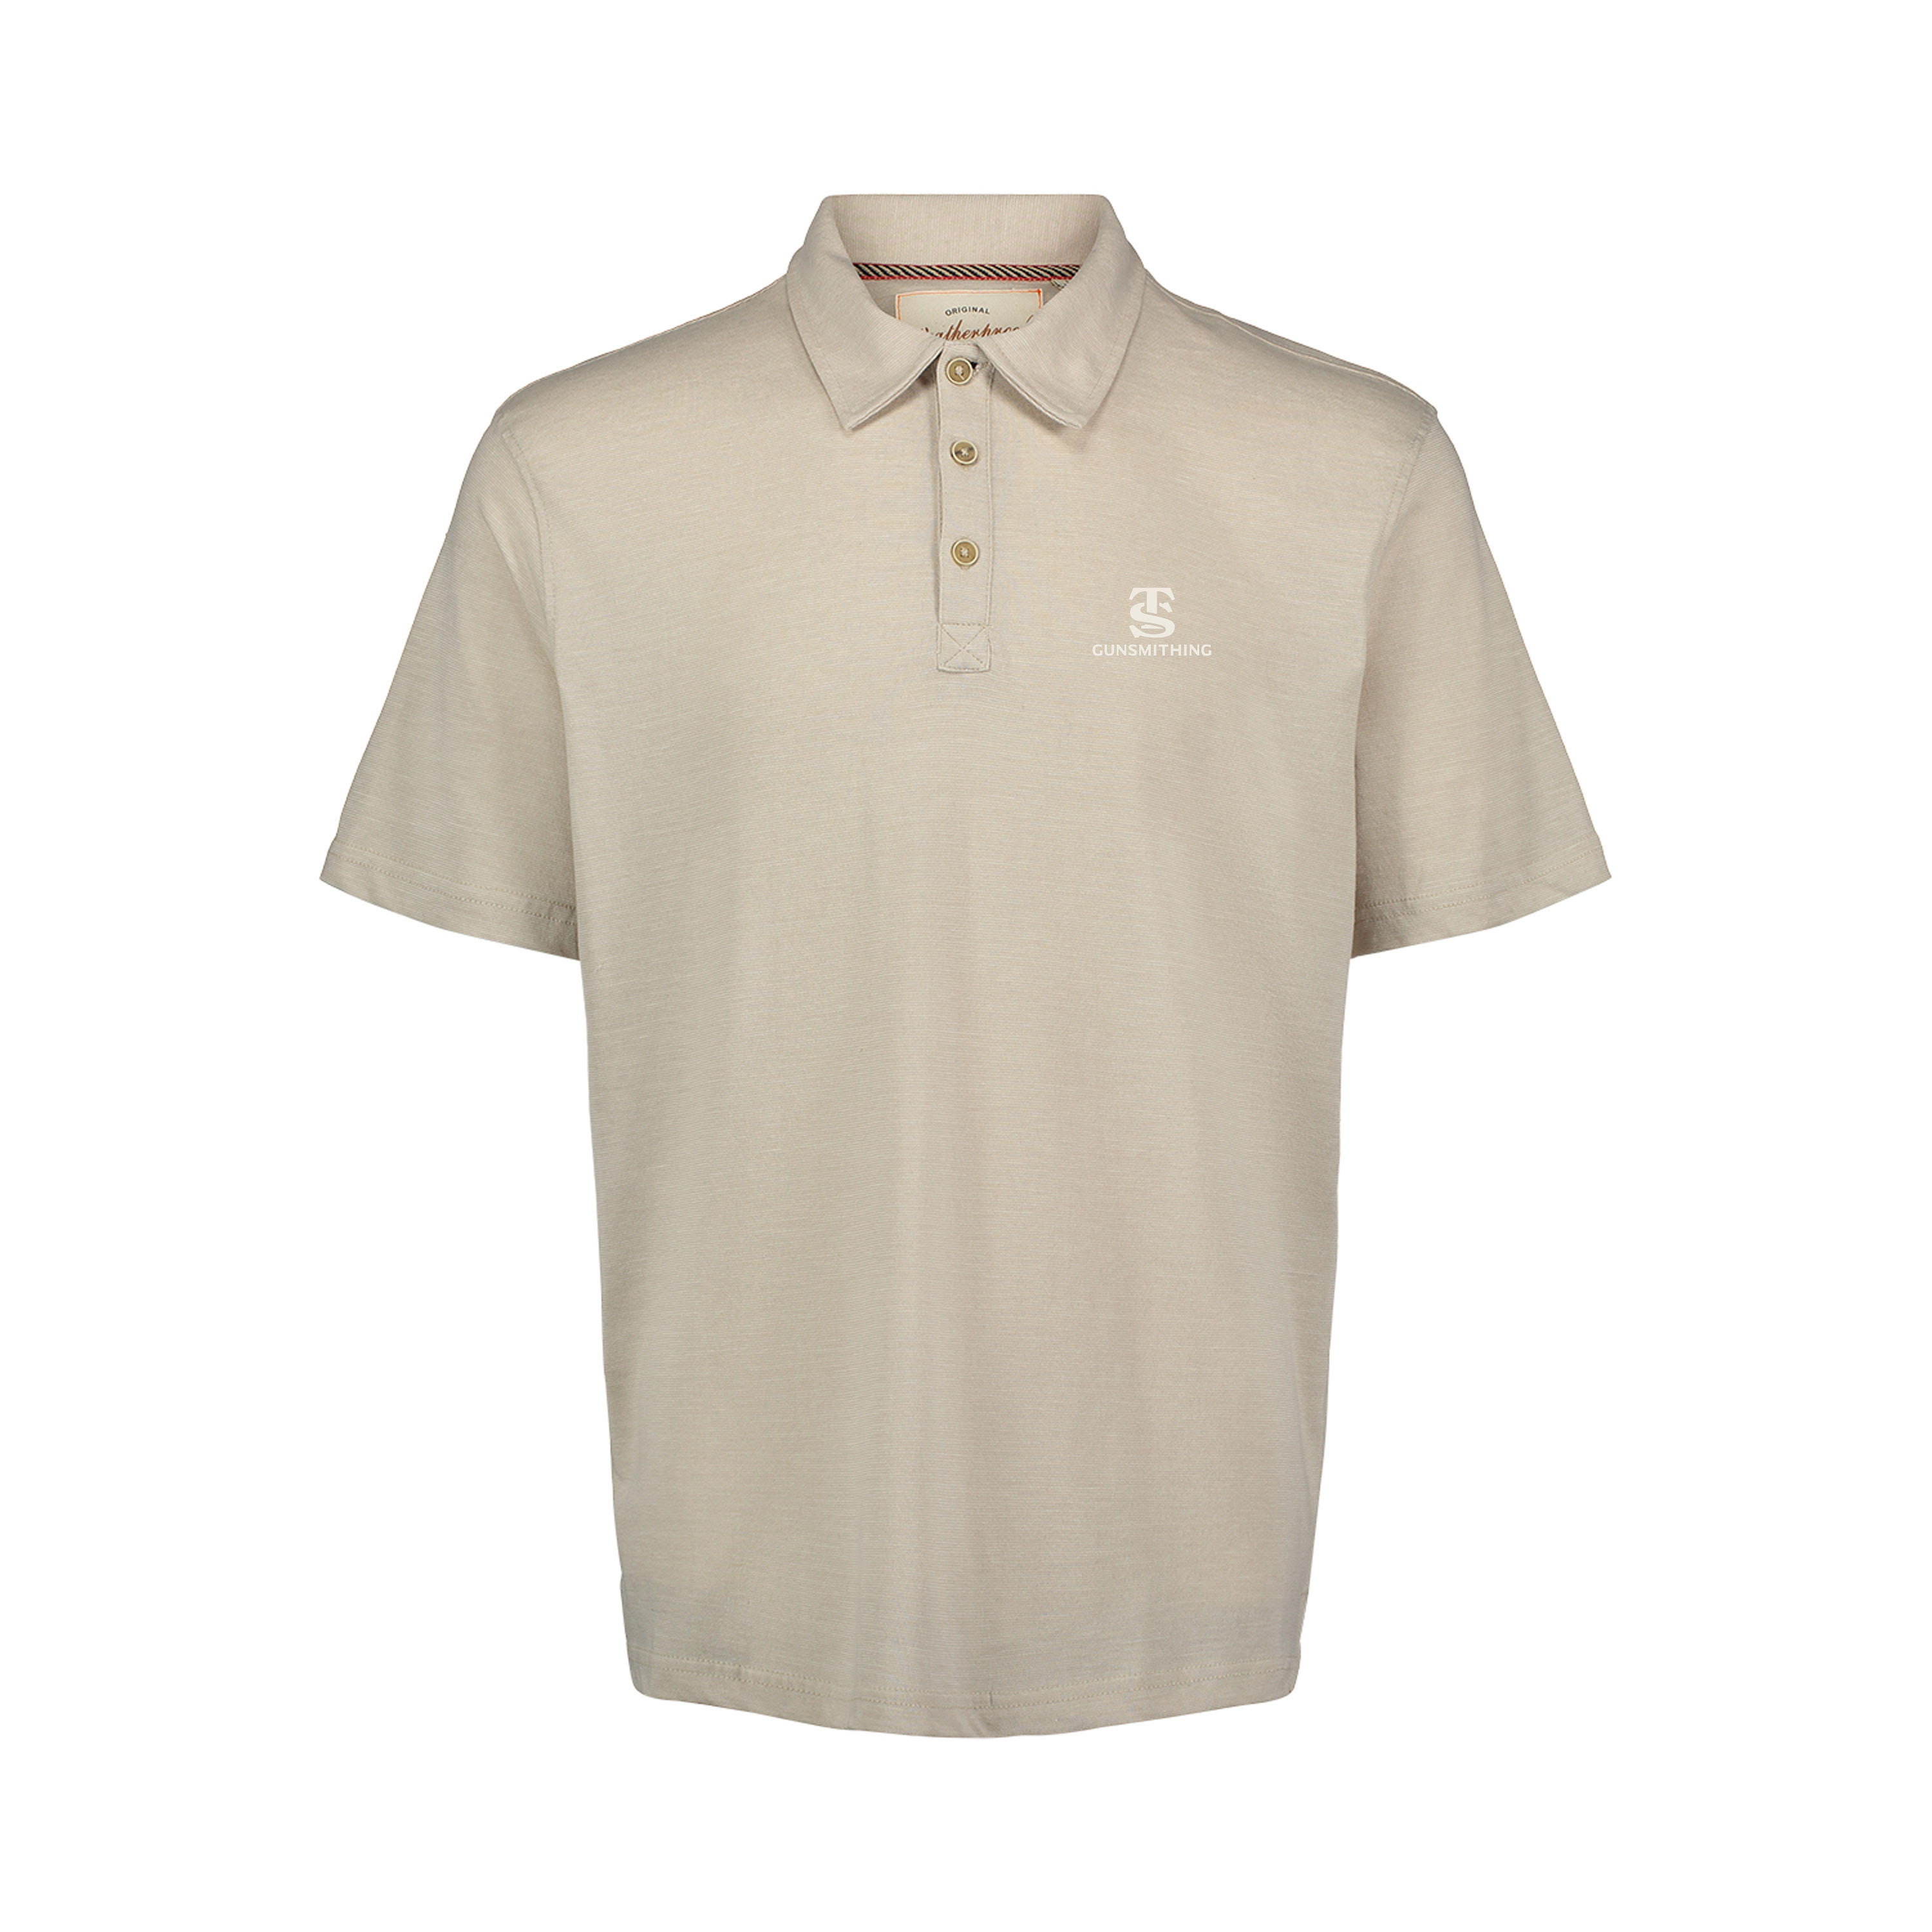 TS Gunsmithing 1/4 Button Polo